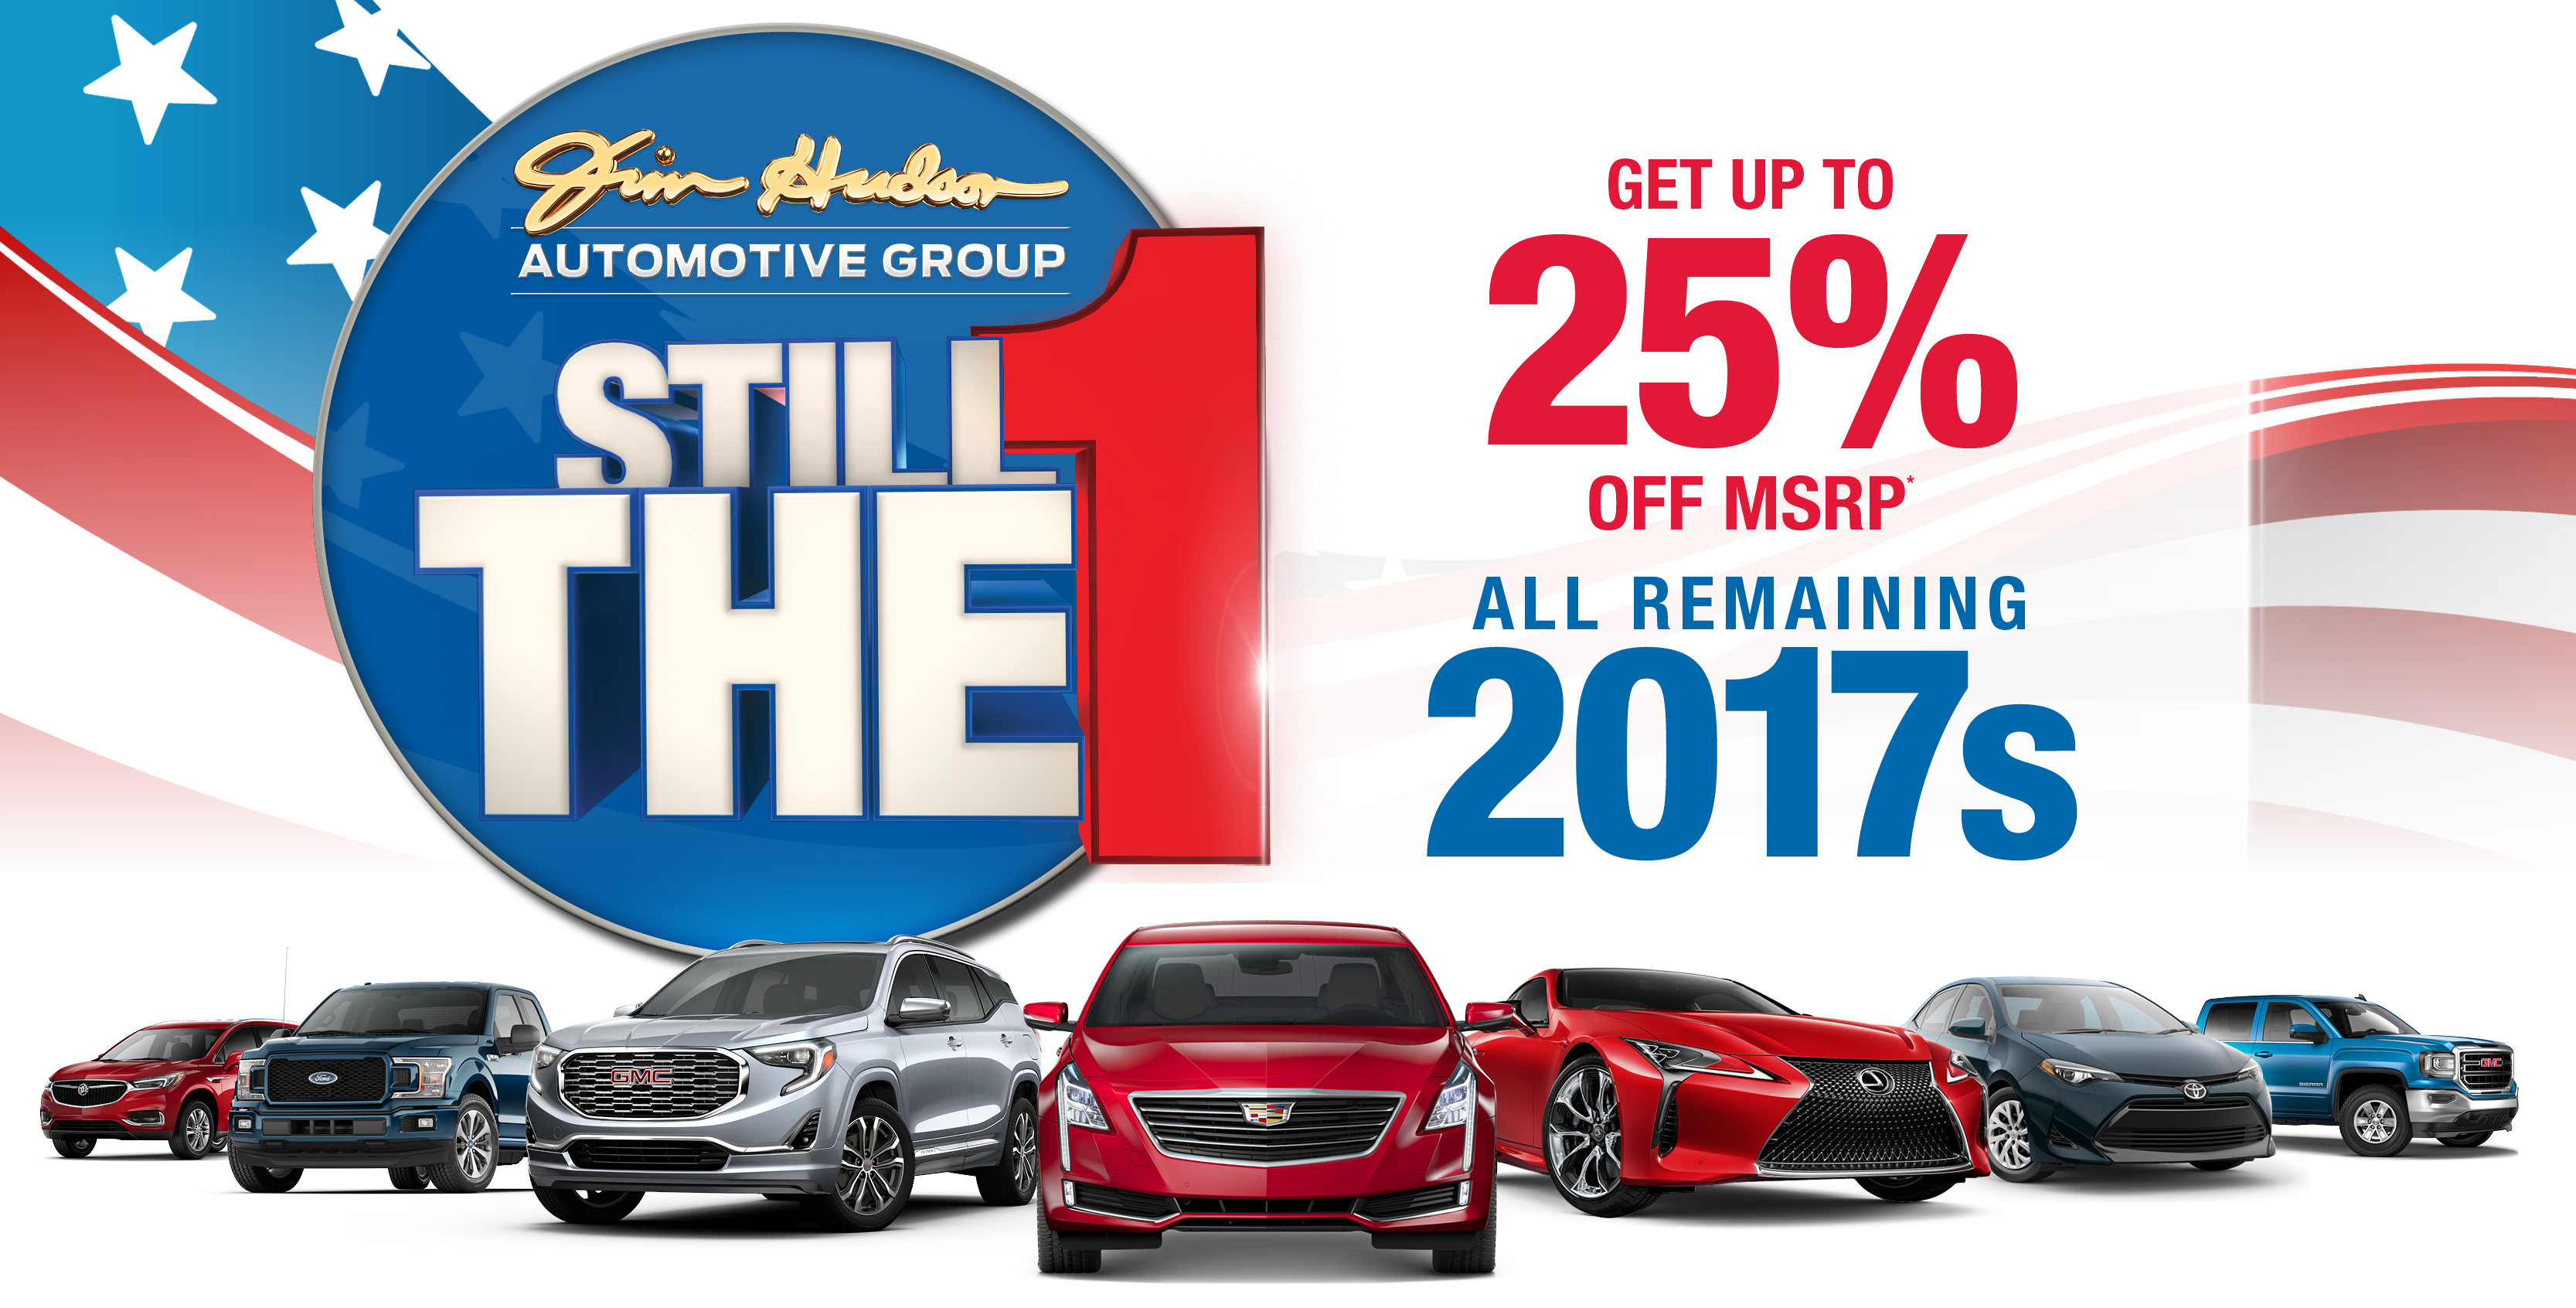 Get up to 25% Off MSPR